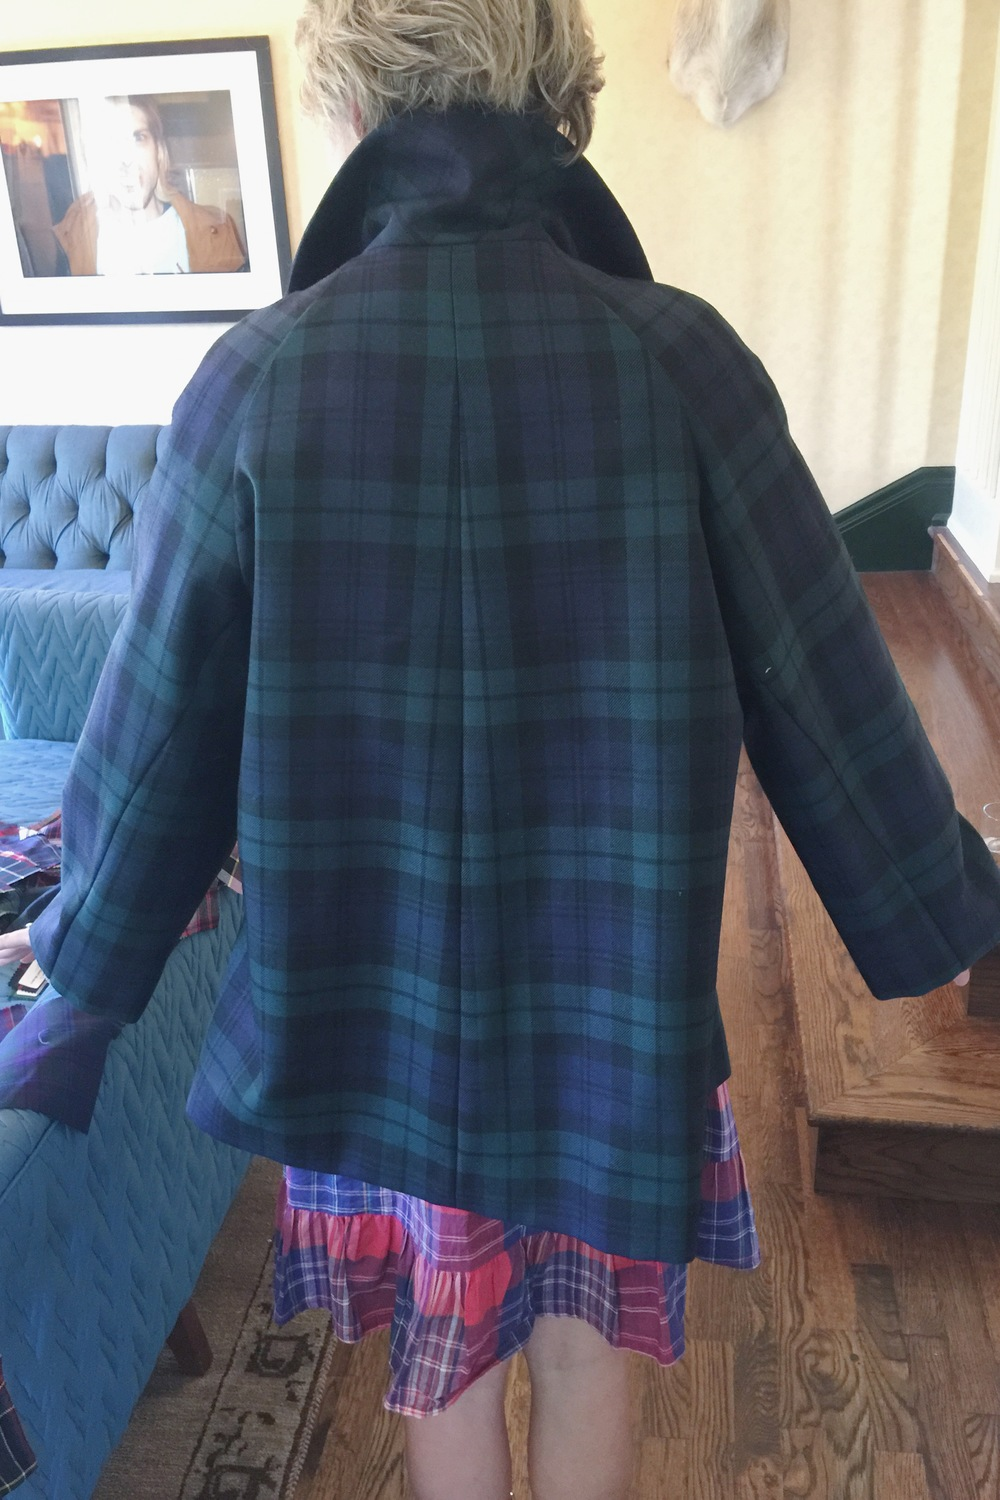 Tiffany in THE COAT/ Black Watch tartan. Made-to-order. Seattle 2015